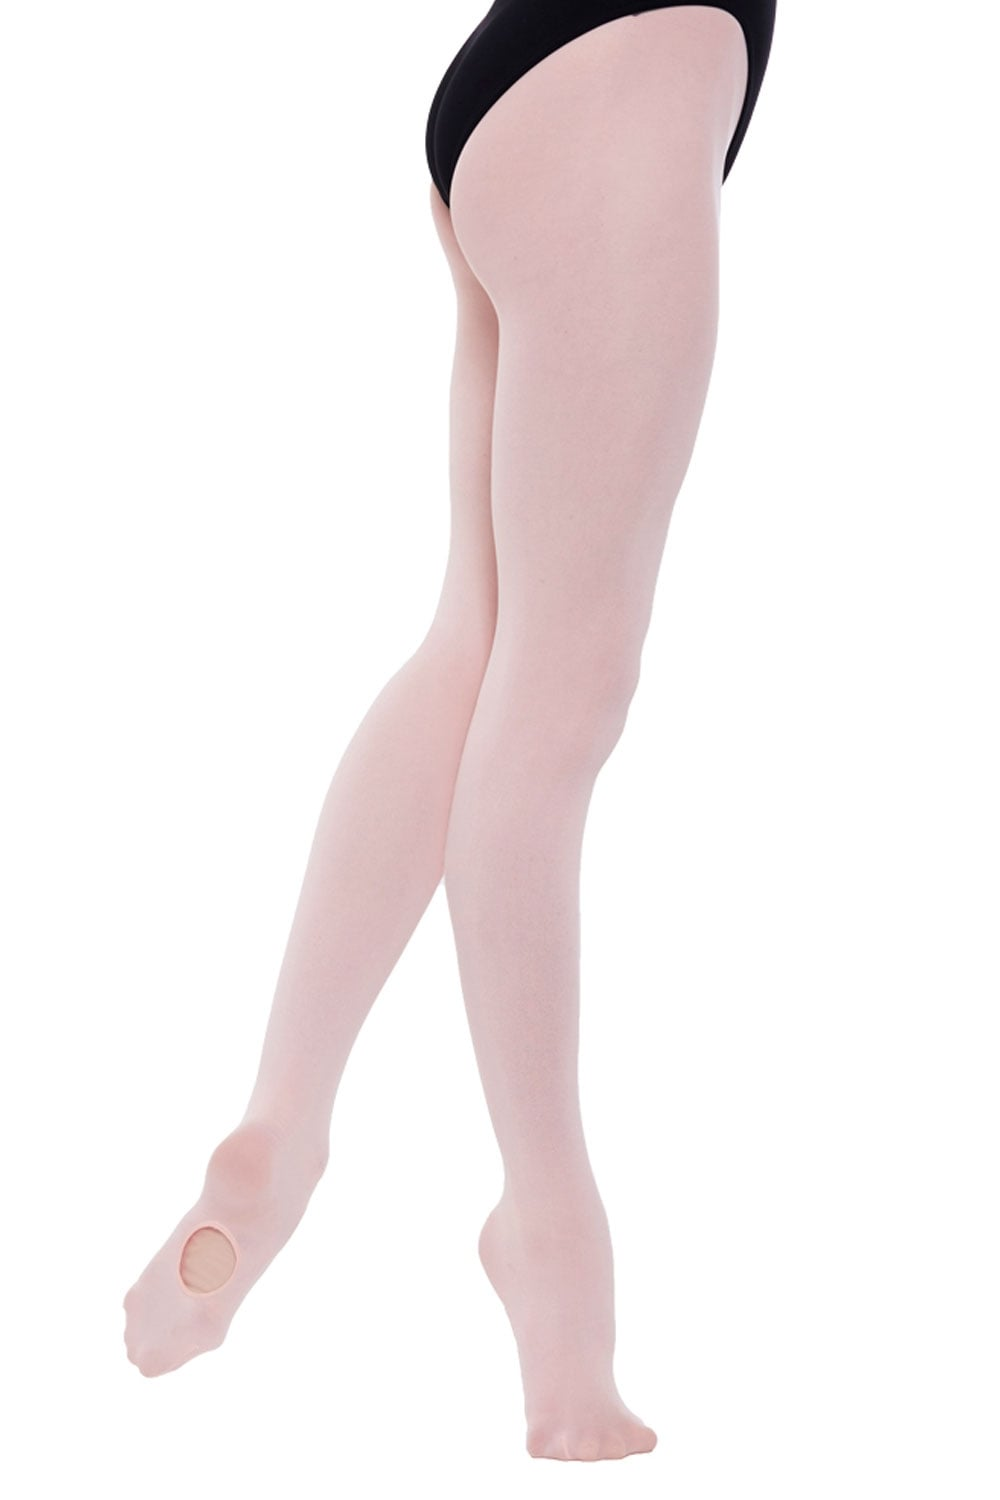 Dance tights by us - Move Dance - are voted 5* by our dancers because of their high quality, superior soft feel and durability. Our ballet tights are made of soft microfibre and have seams strategically positioned and flattened for optimum comfort.